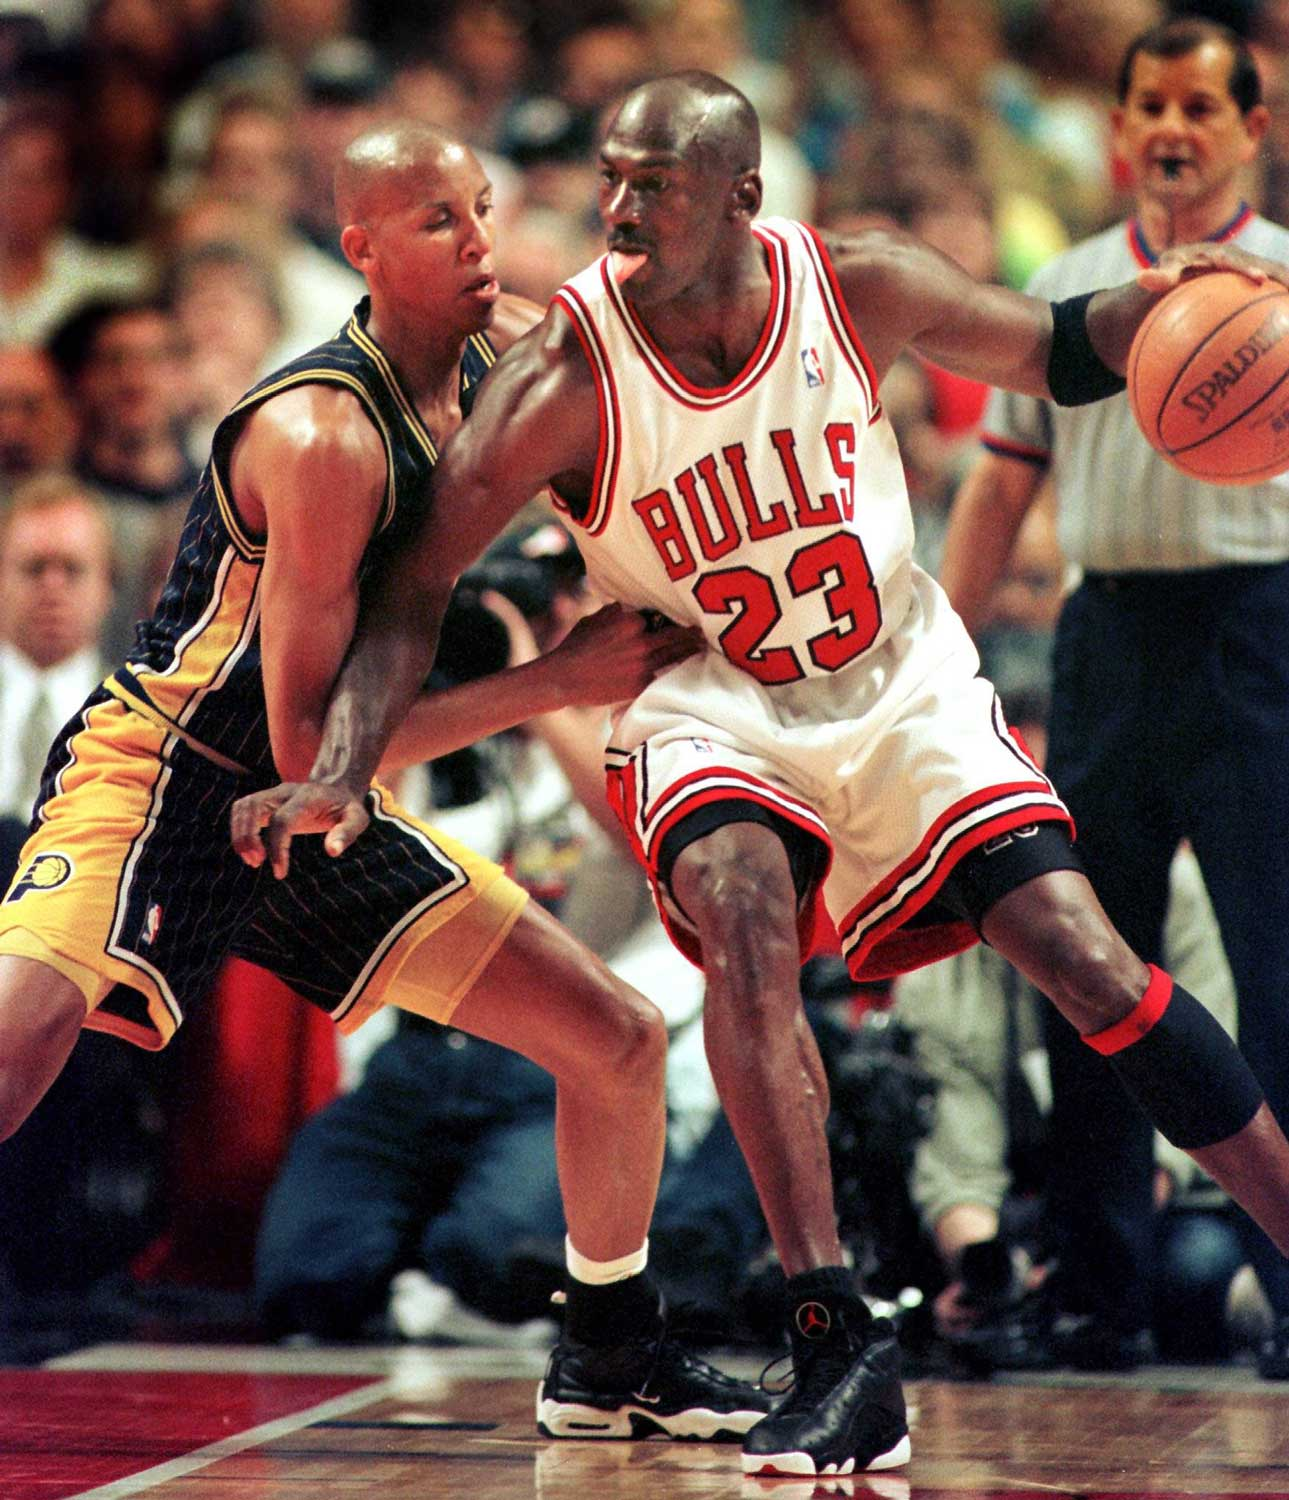 A rookie Reggie Miller, while with the Indiana Pacers squaring off with the one and only, Michael Jordan of the Chicago Bulls